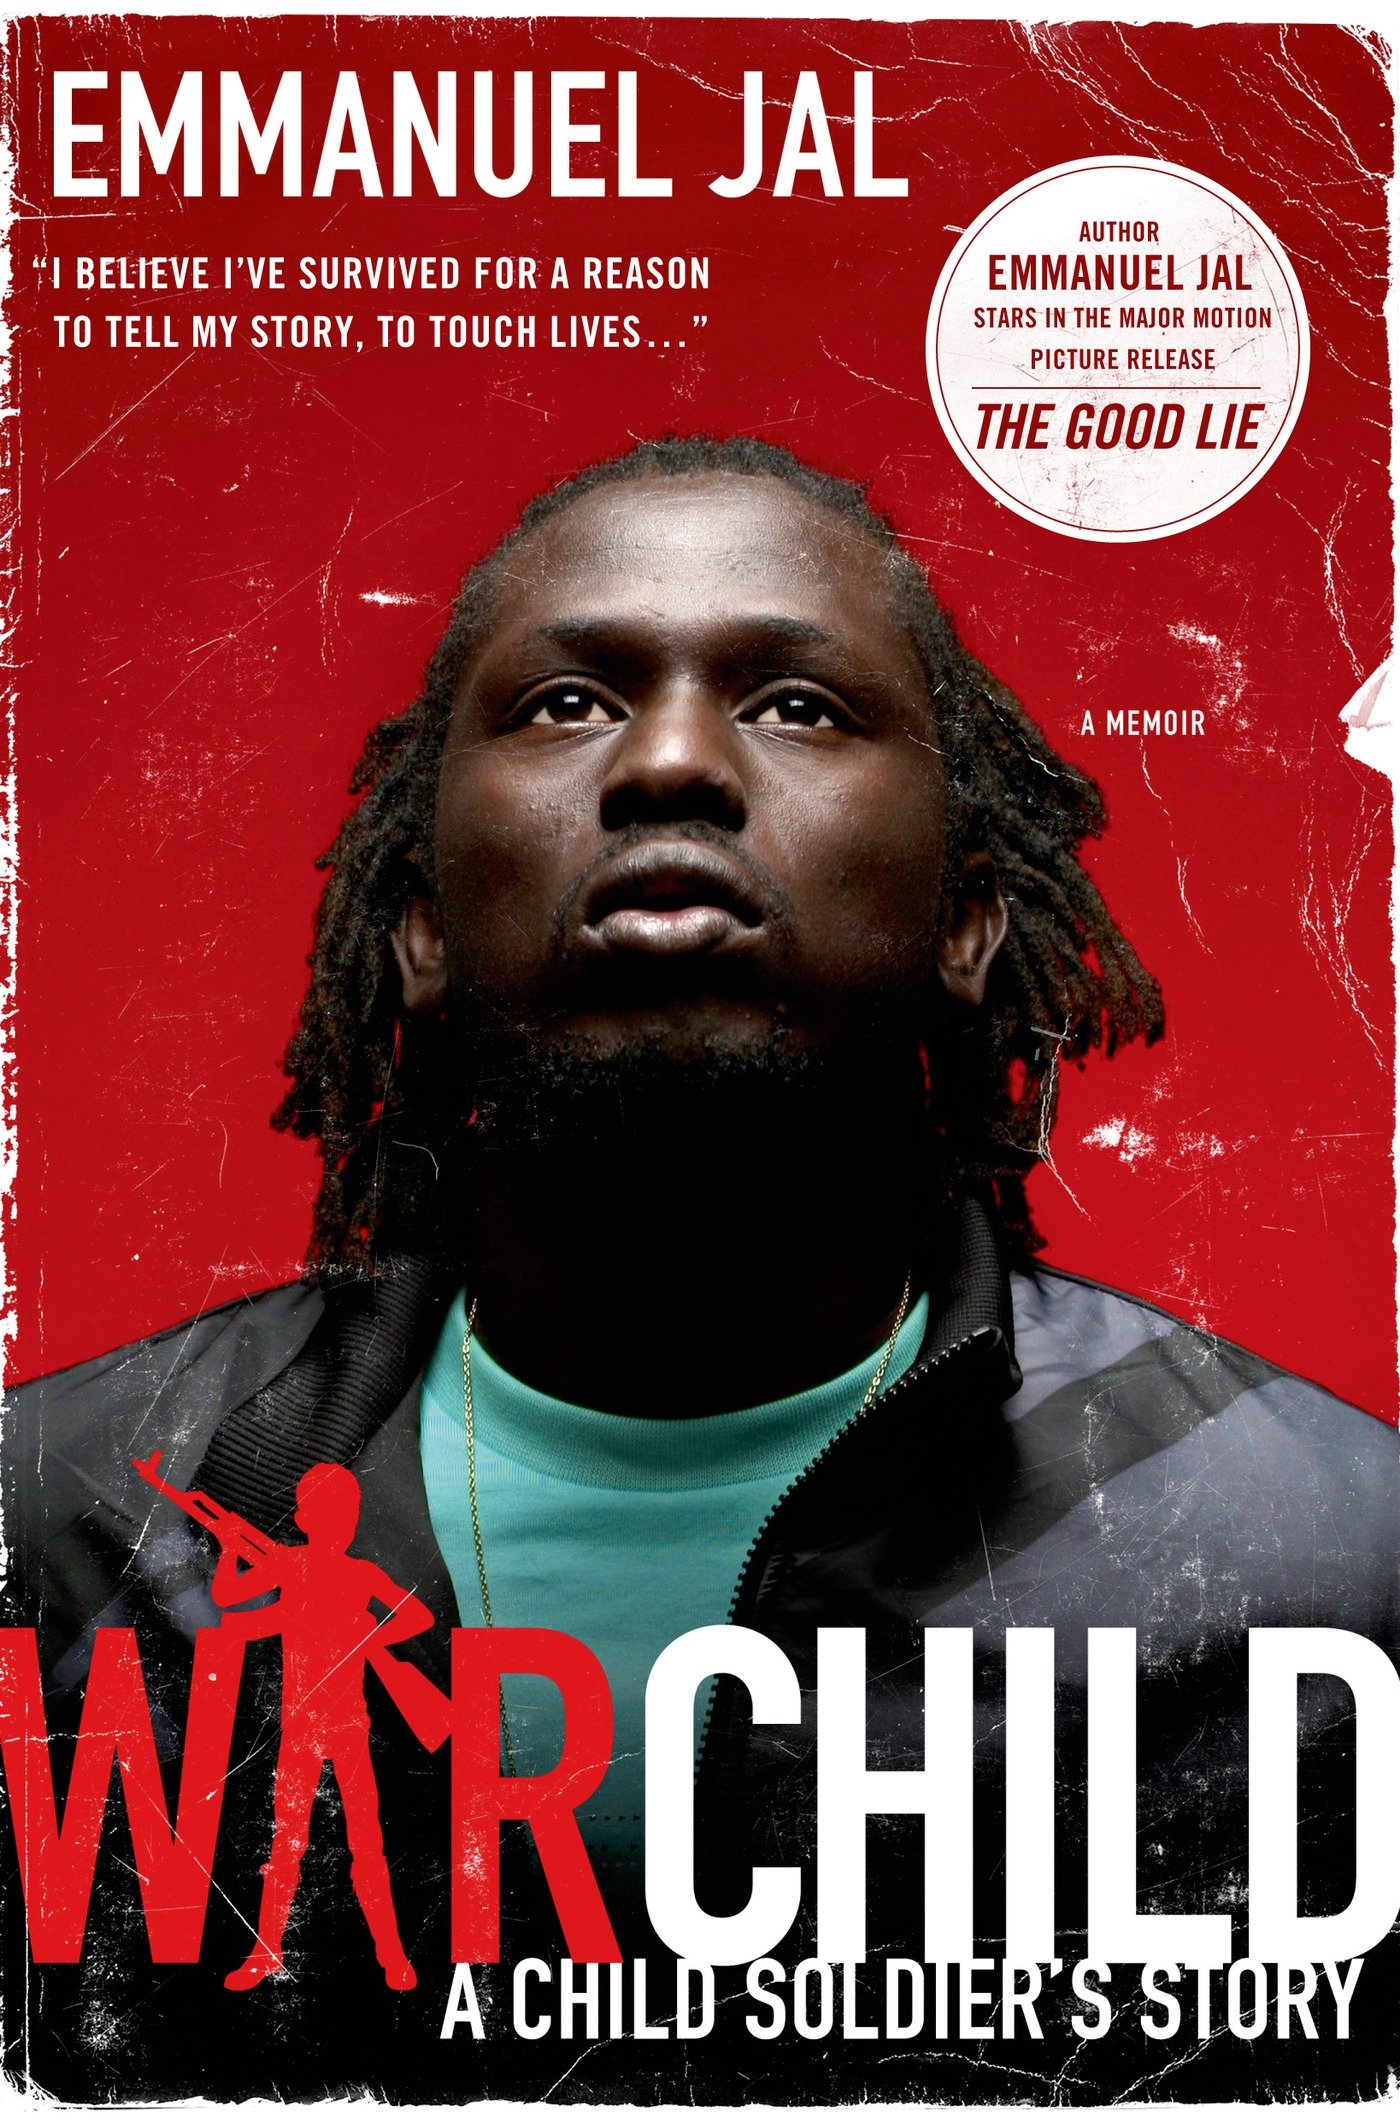 emmanuel jal lyrics